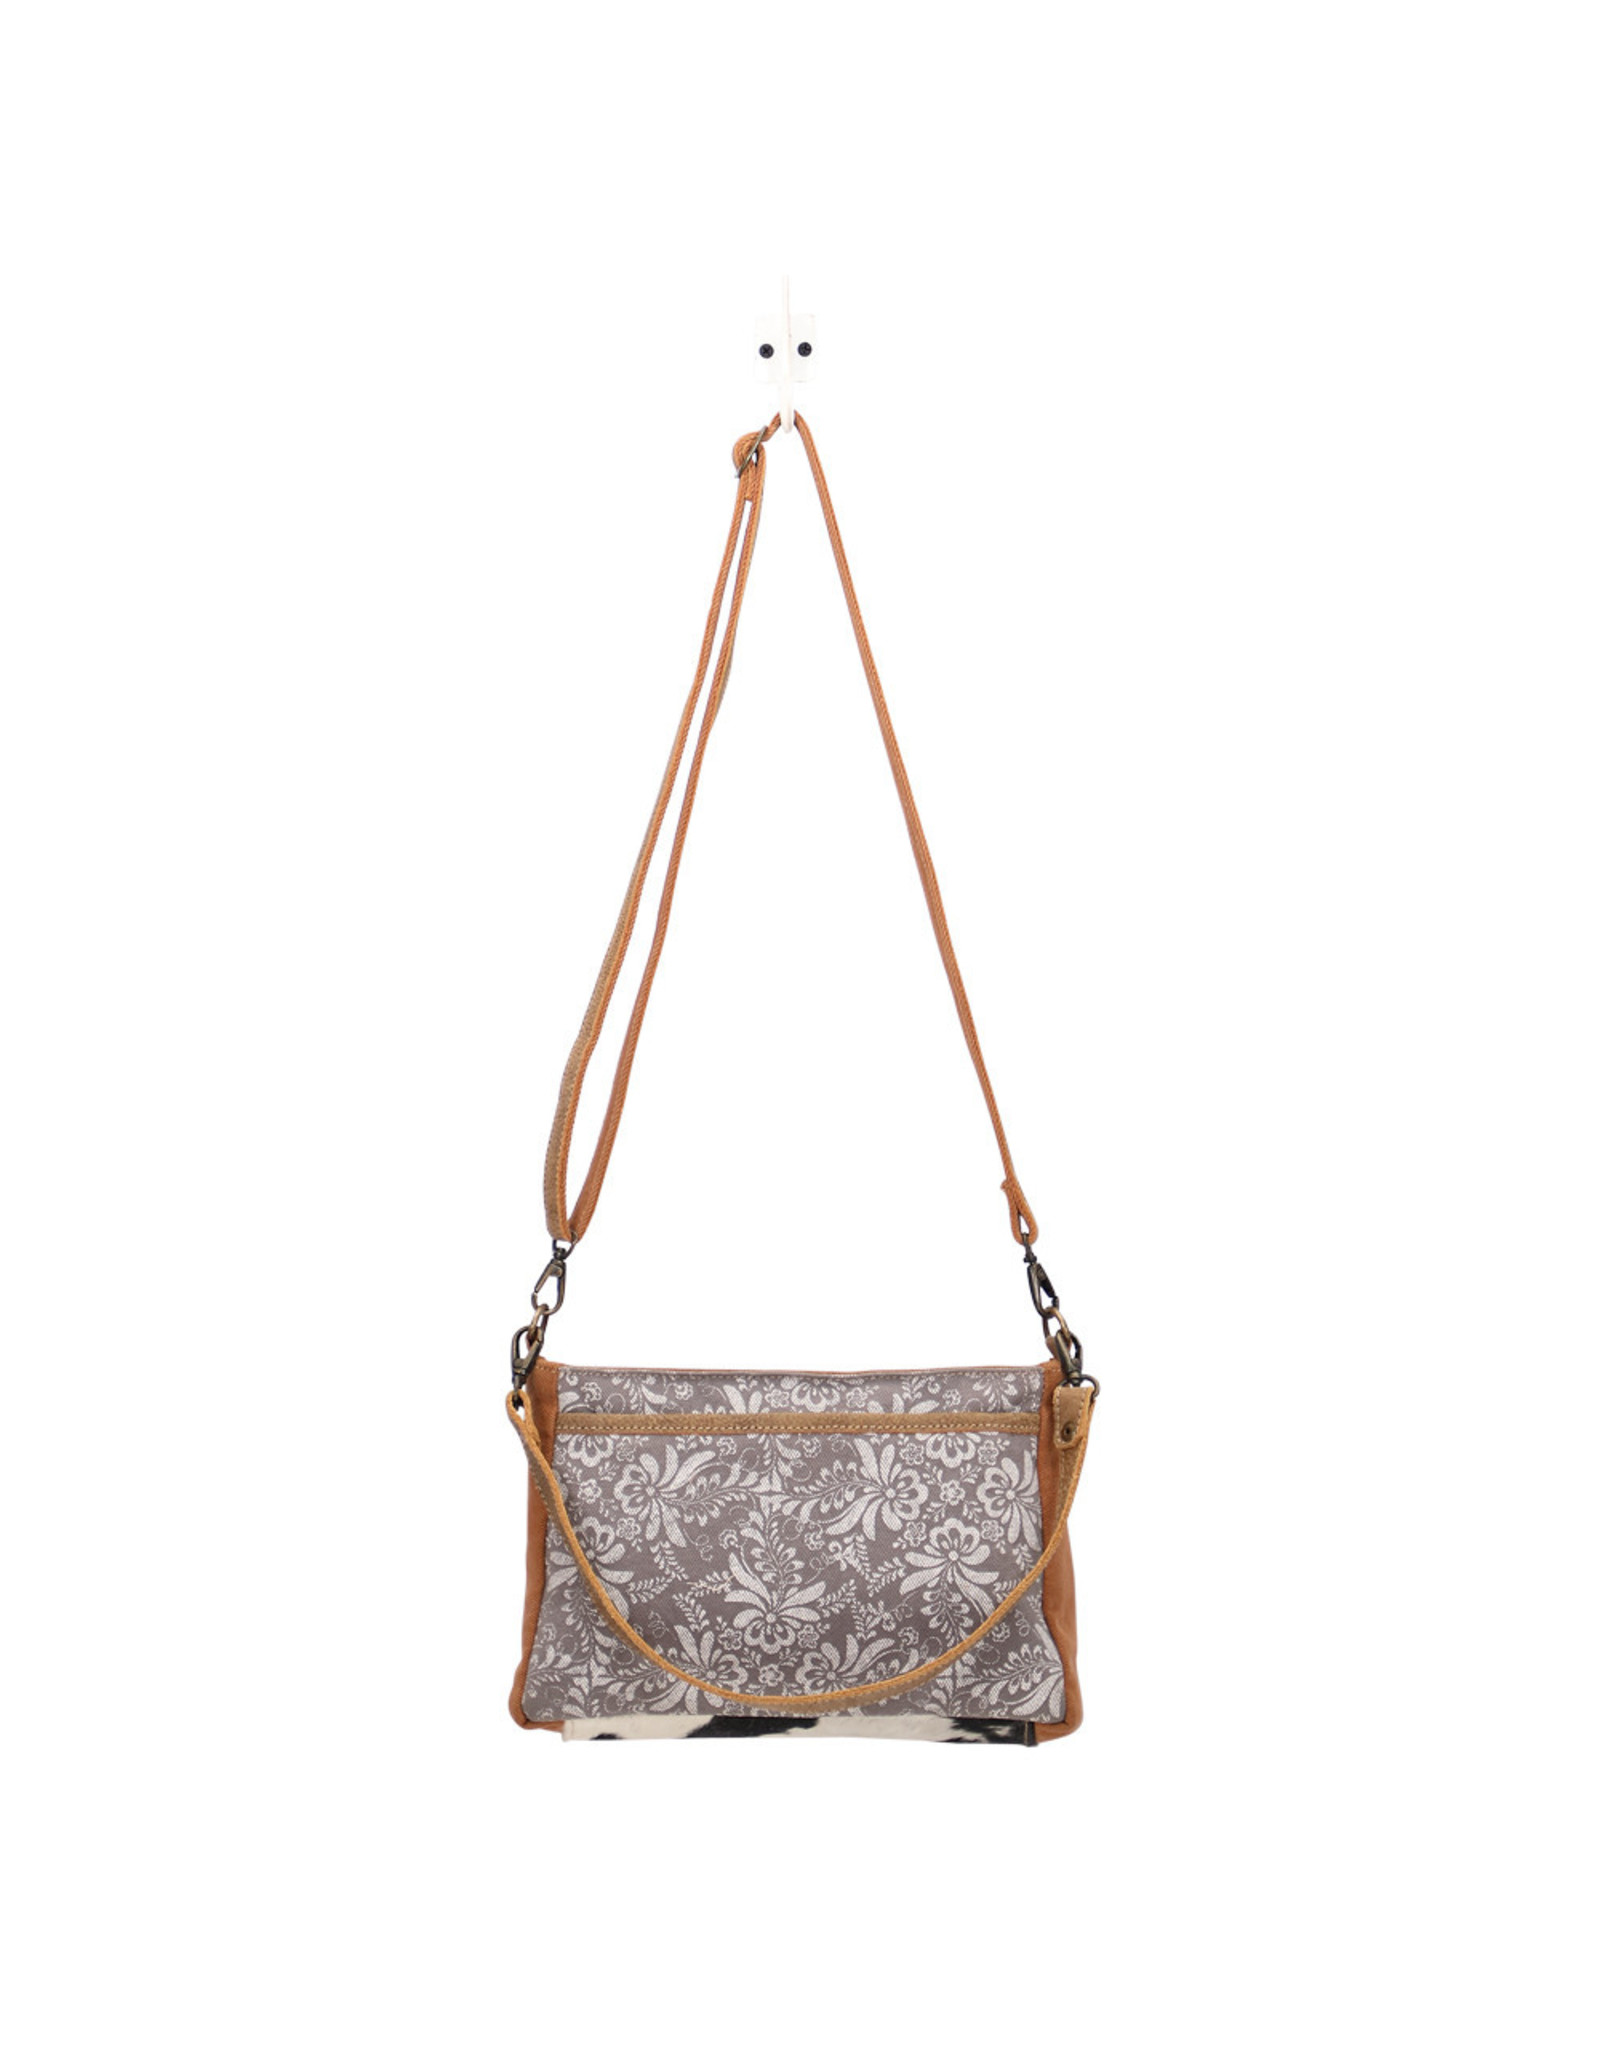 S 1458 Florid Small Crossbody Bag Public records deep searchbackground check, contact information, mentions monitoring and more. myra bags s 1458 florid small crossbody bag